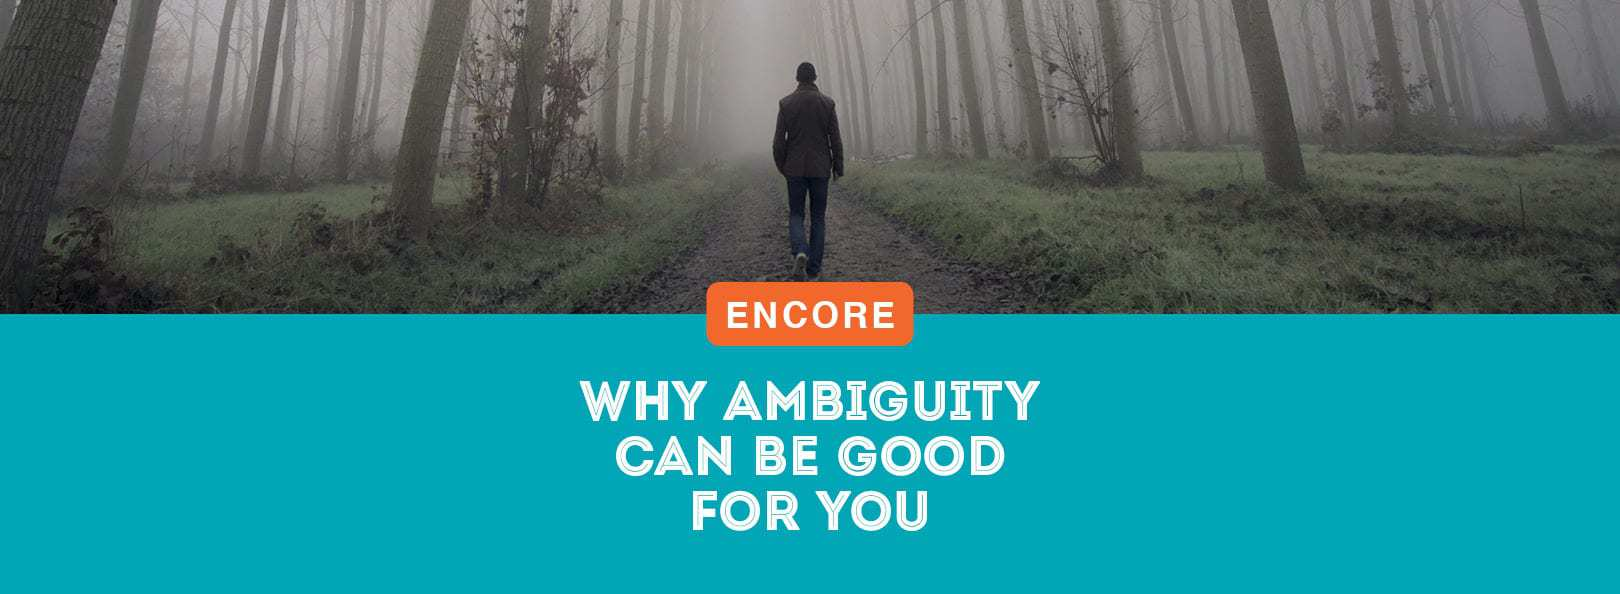 ENCORE: Why Ambiguity Can Be Good For You